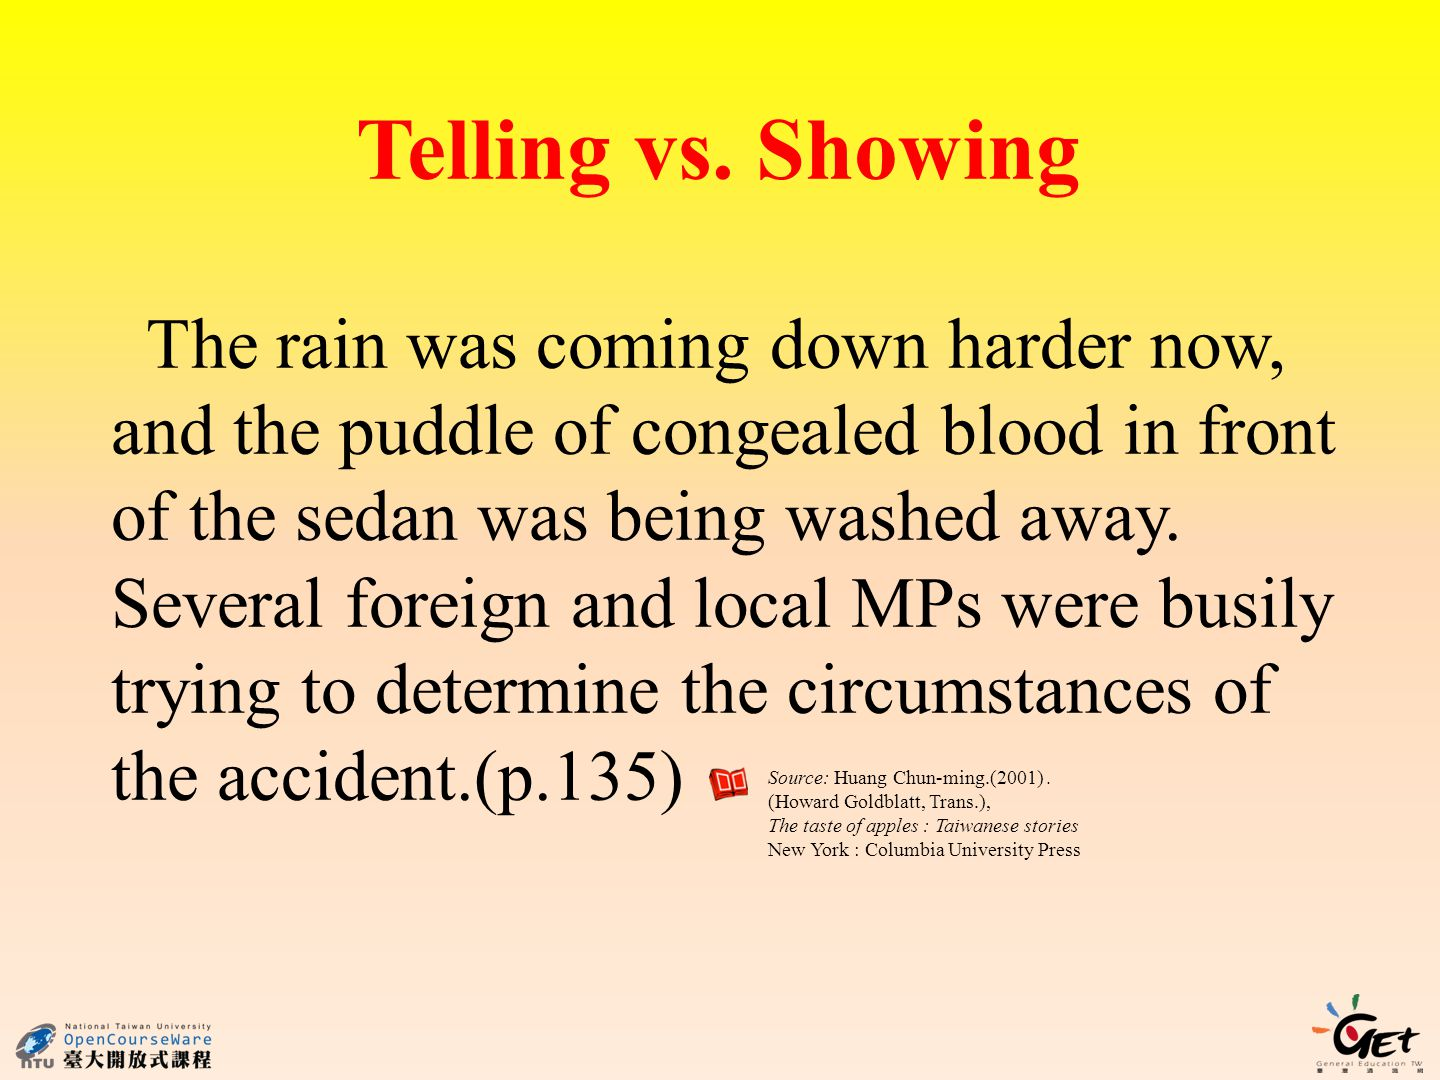 Telling vs. Showing The rain was coming down harder now, and the puddle of congealed blood in front of the sedan was being washed away. Several foreig